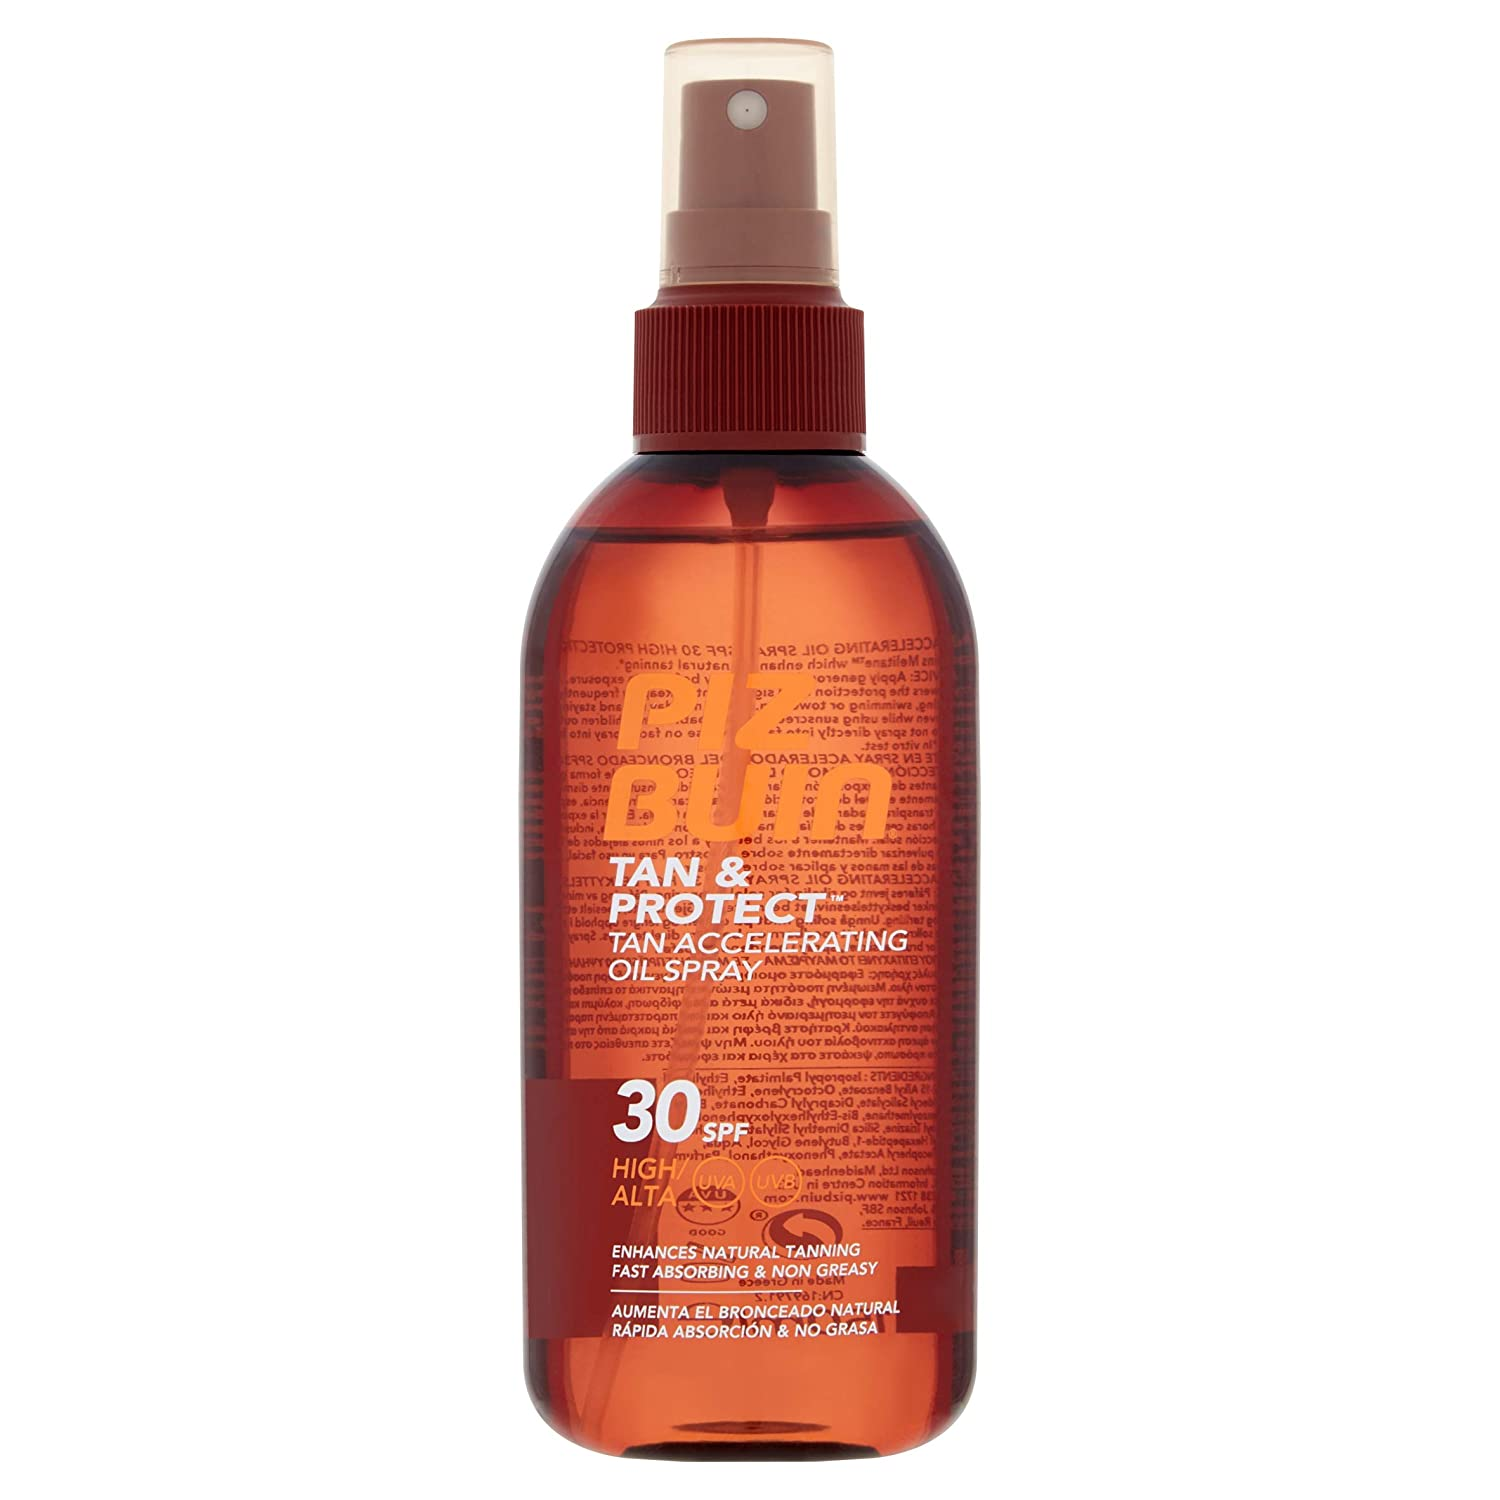 Piz Buin Tan and Protect Accelerating Oil Spray SPF 30 150 ml by Piz Buin Johnson & Johnson 026048 41973